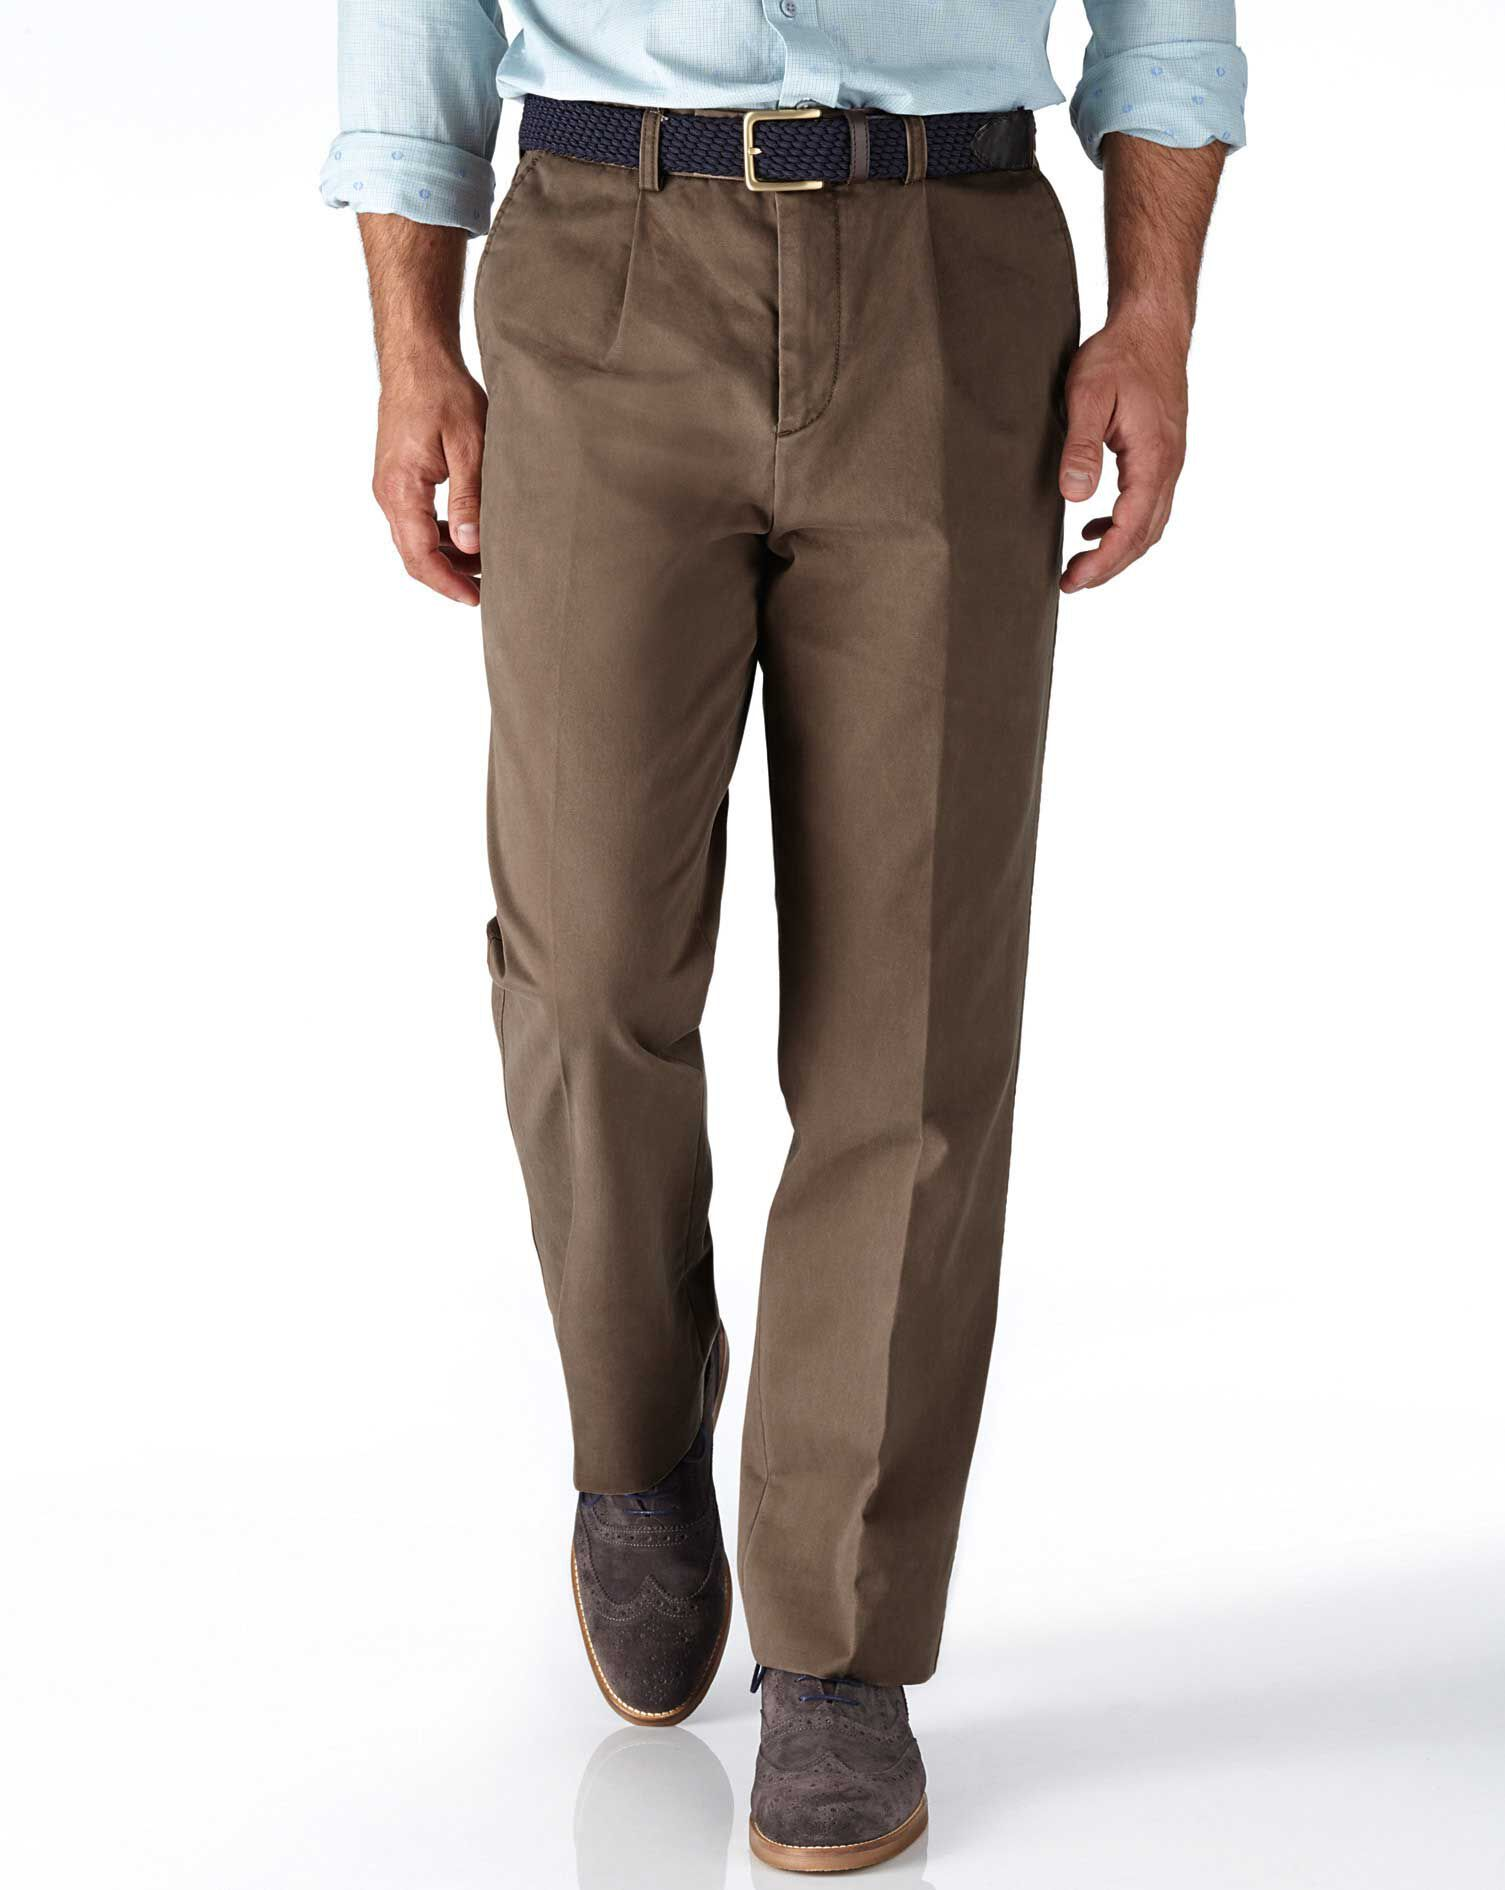 Light Brown Classic Fit Single Pleat Cotton Chino Trousers Size W34 L32 by Charles Tyrwhitt